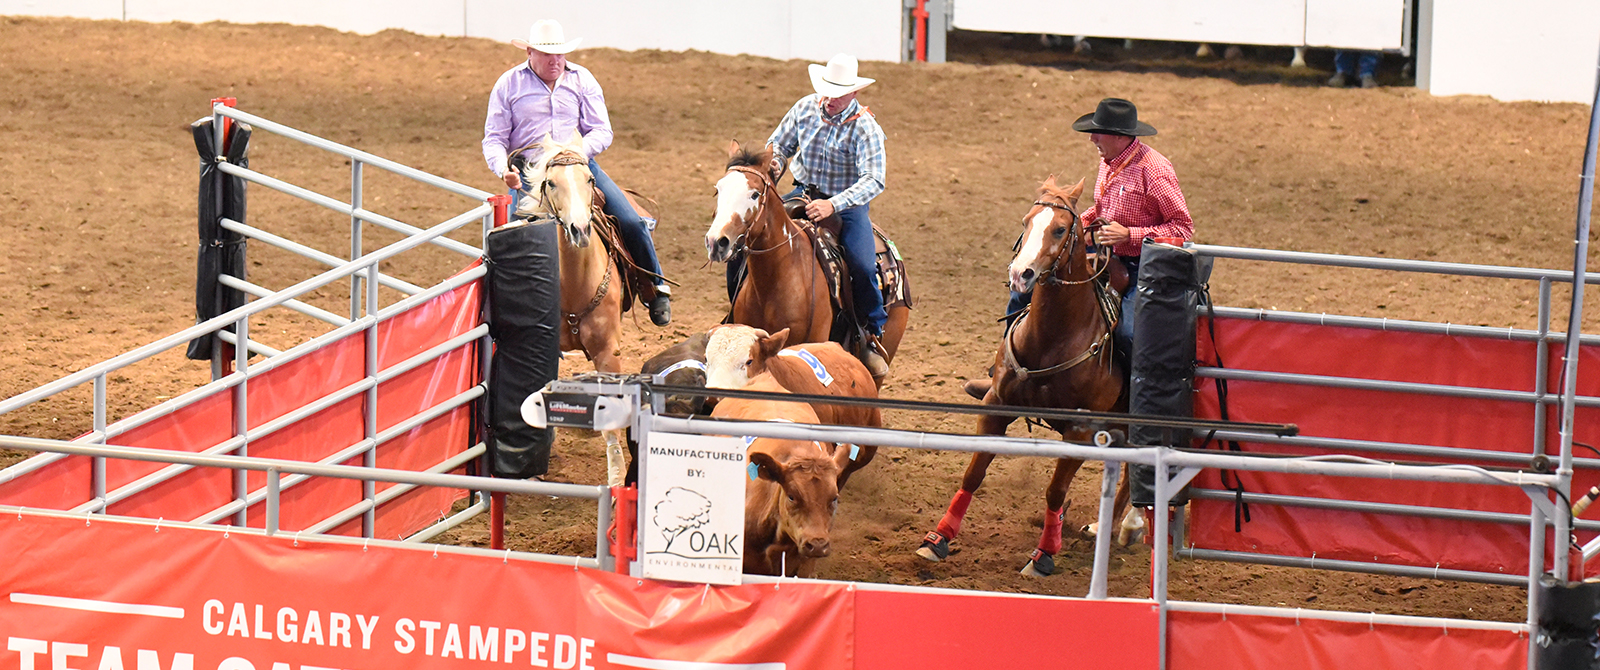 Team Cattle Penning Calgary Stampede